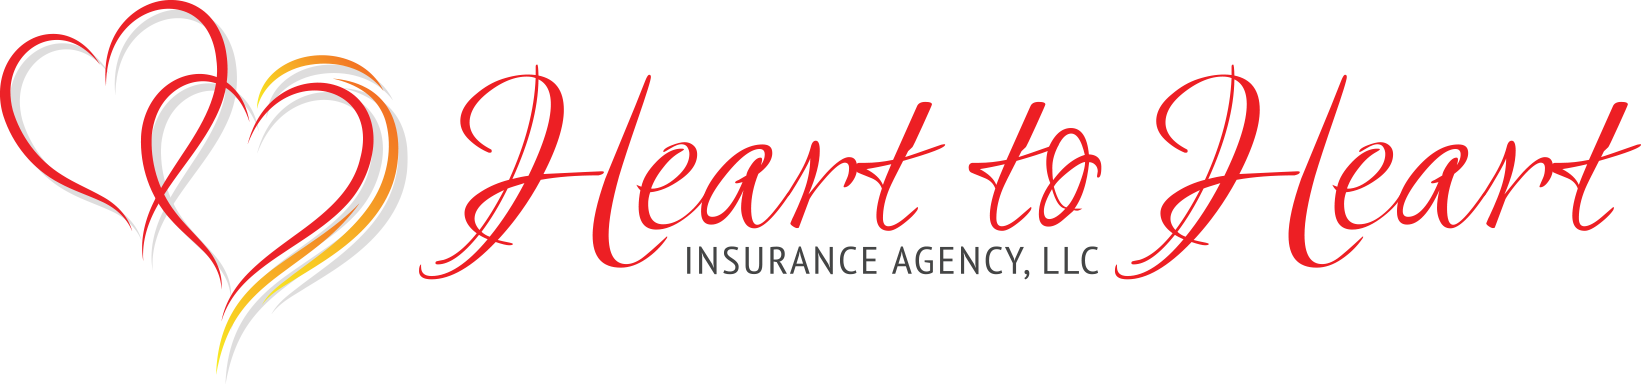 Heart To Heart Insurance Agency, LLC